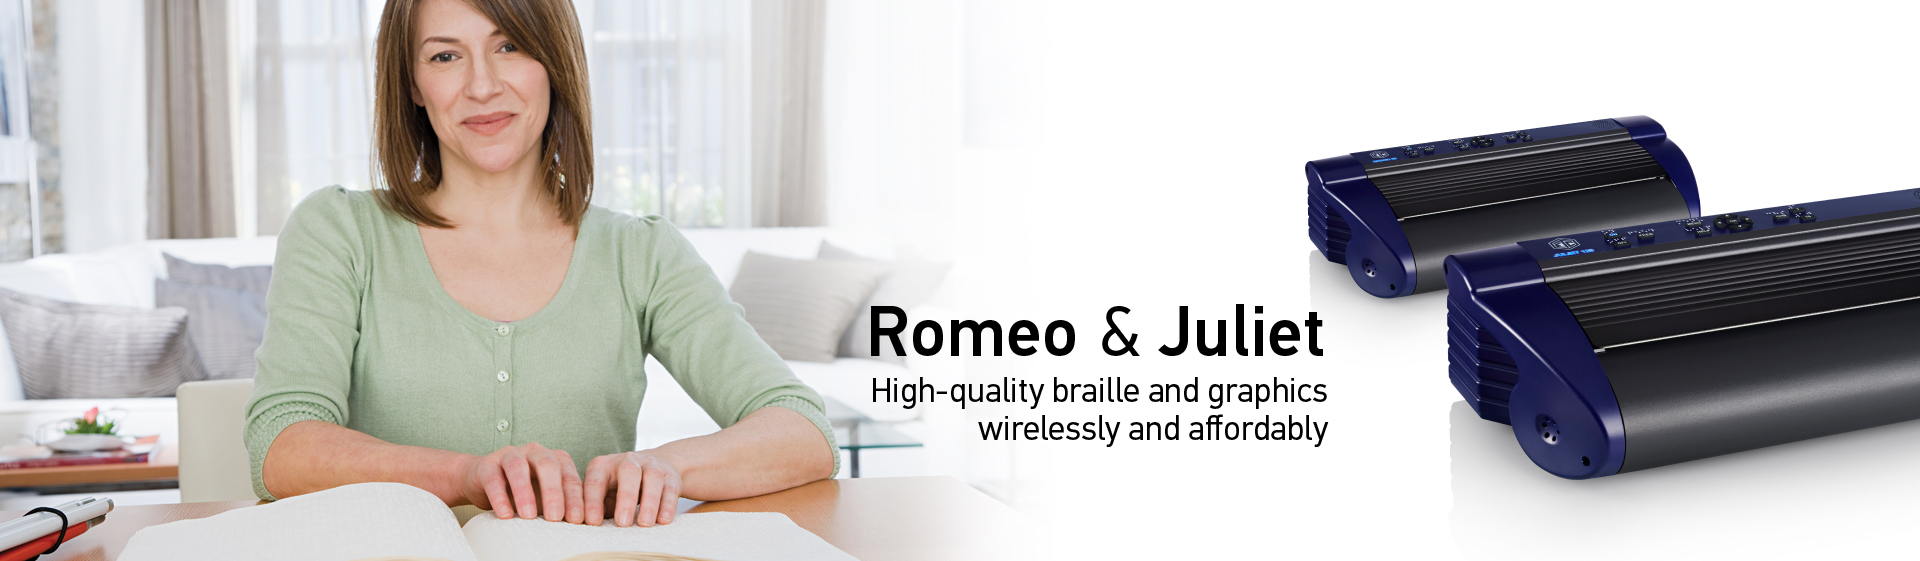 Romeo & Juliet - High-quality braille and graphics wirelessly and affordably